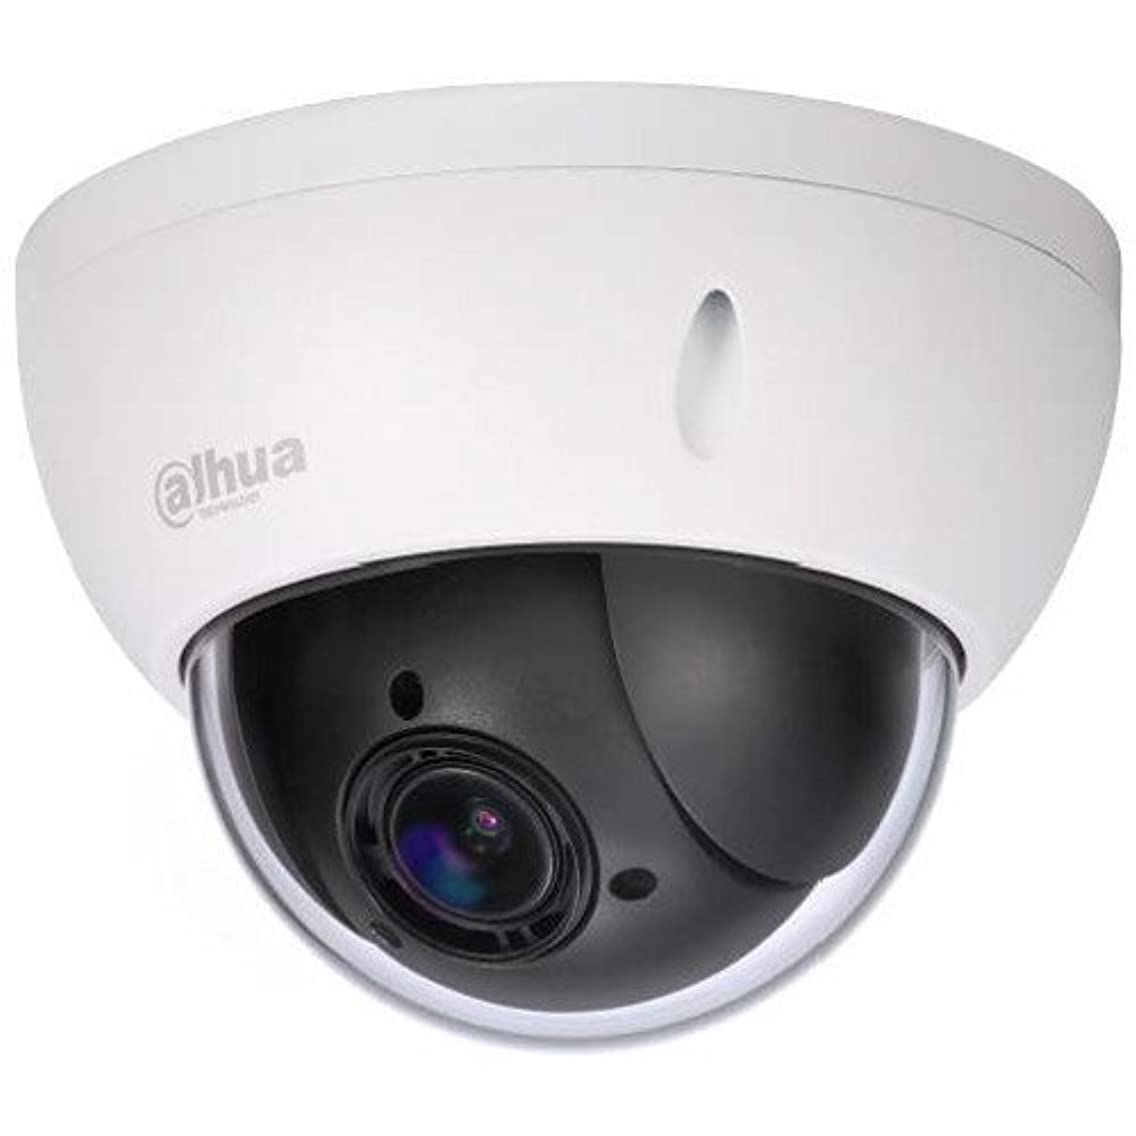 Dahua 4MP PTZ IP PoE Camera SD22404T-GN 2.7-11mm Varifocal 4X Optical Zoom Indoor Network Dome Camera Onvif IP66 English Version